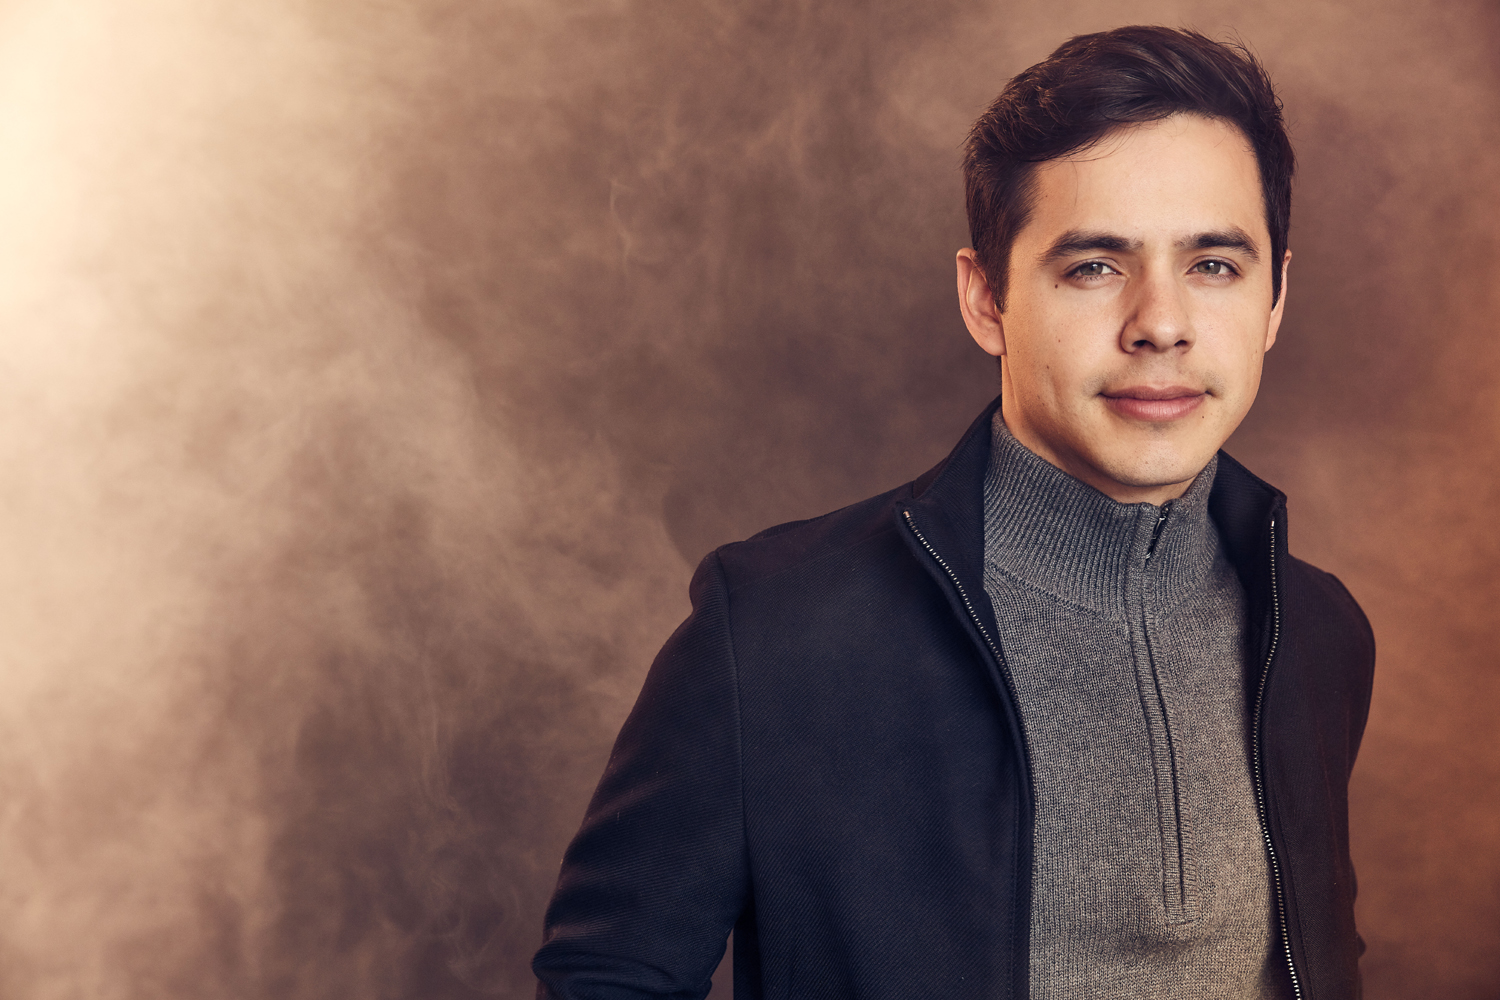 Christmas Every Day: David Archuleta Brings His Christmas Tour To Mesa